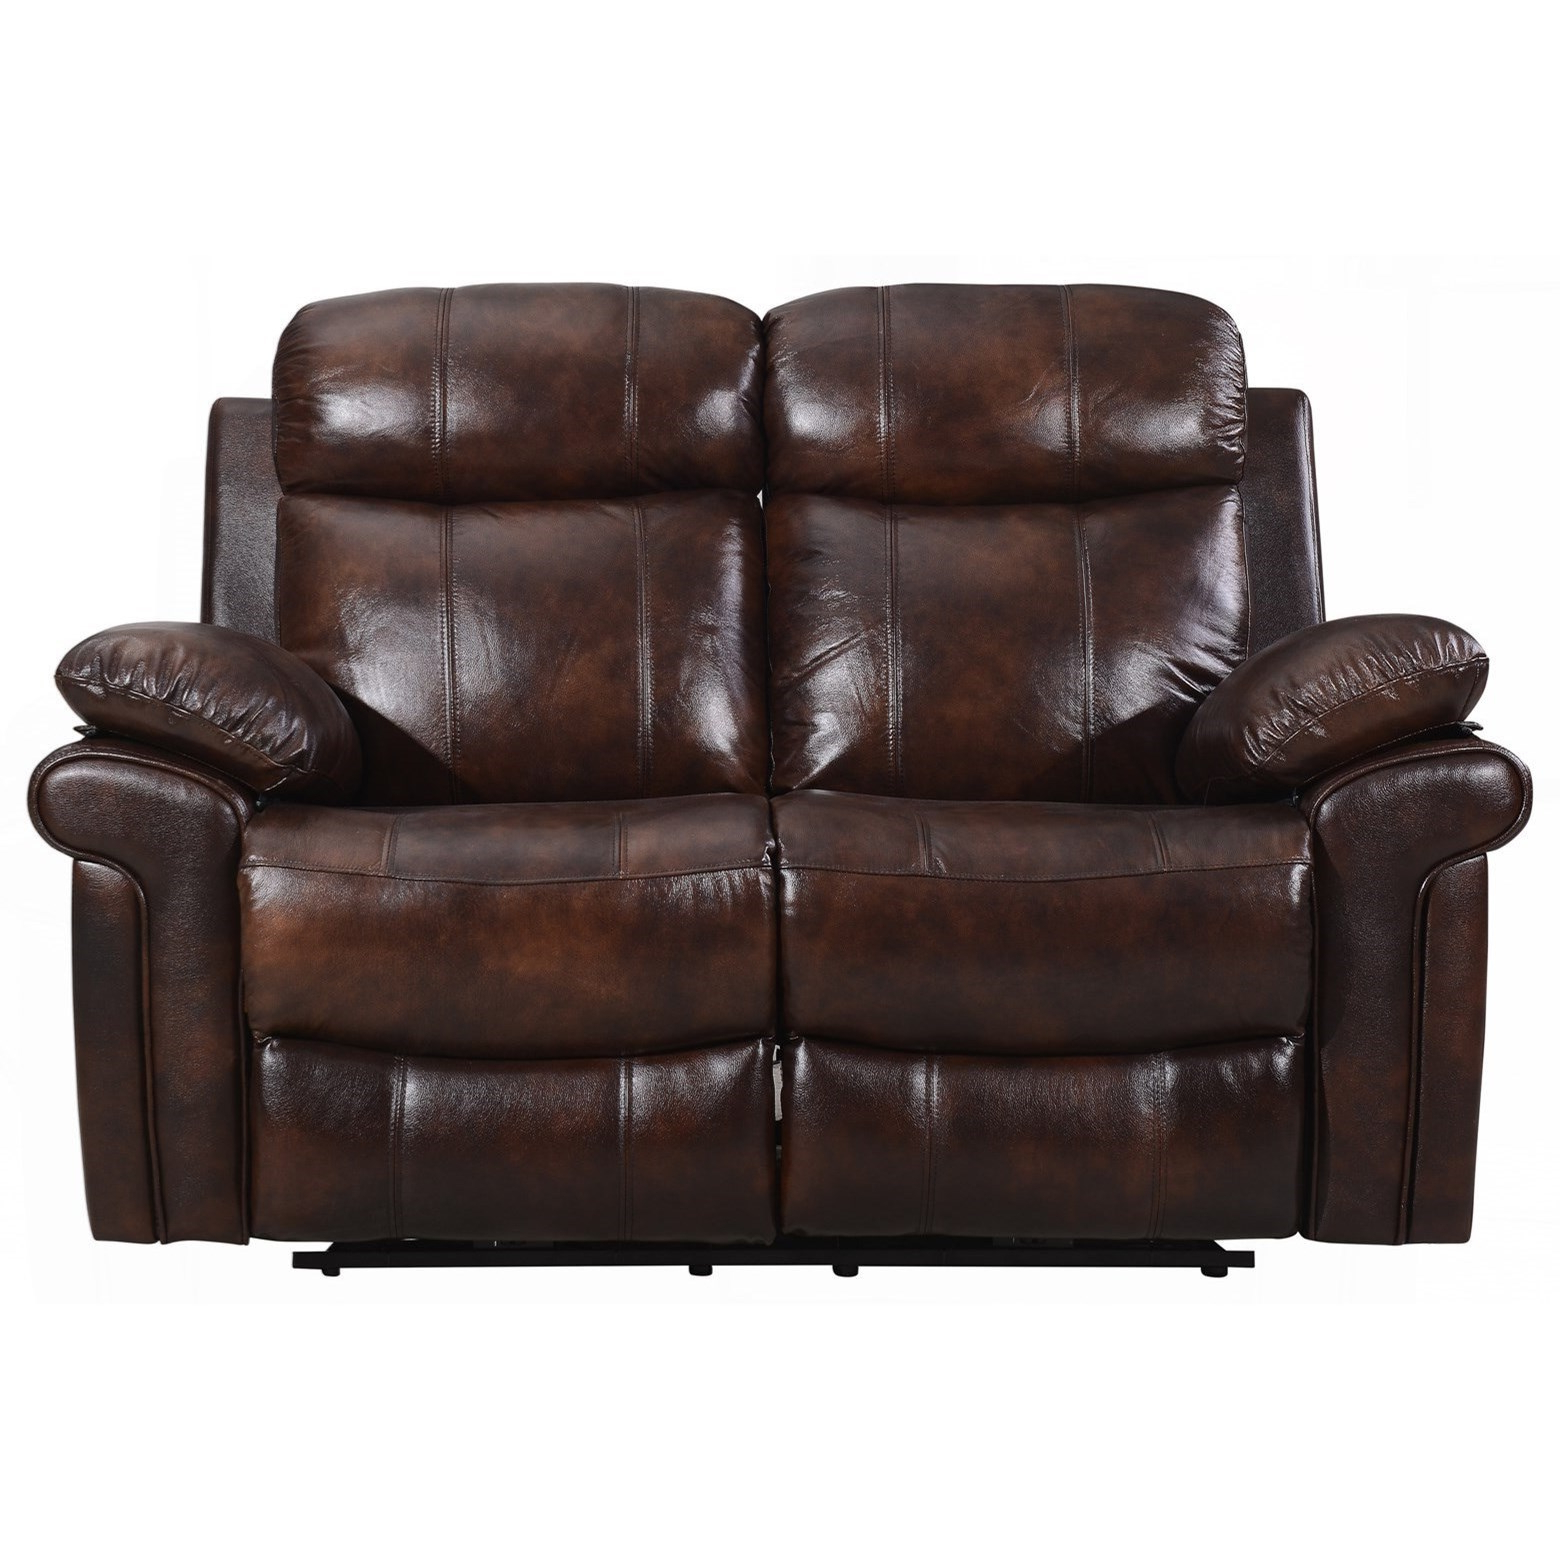 Marcus Chocolate 6 Piece Sectionals With Power Headrest And Usb In Popular Leather And Faux Leather Furniture (View 16 of 20)